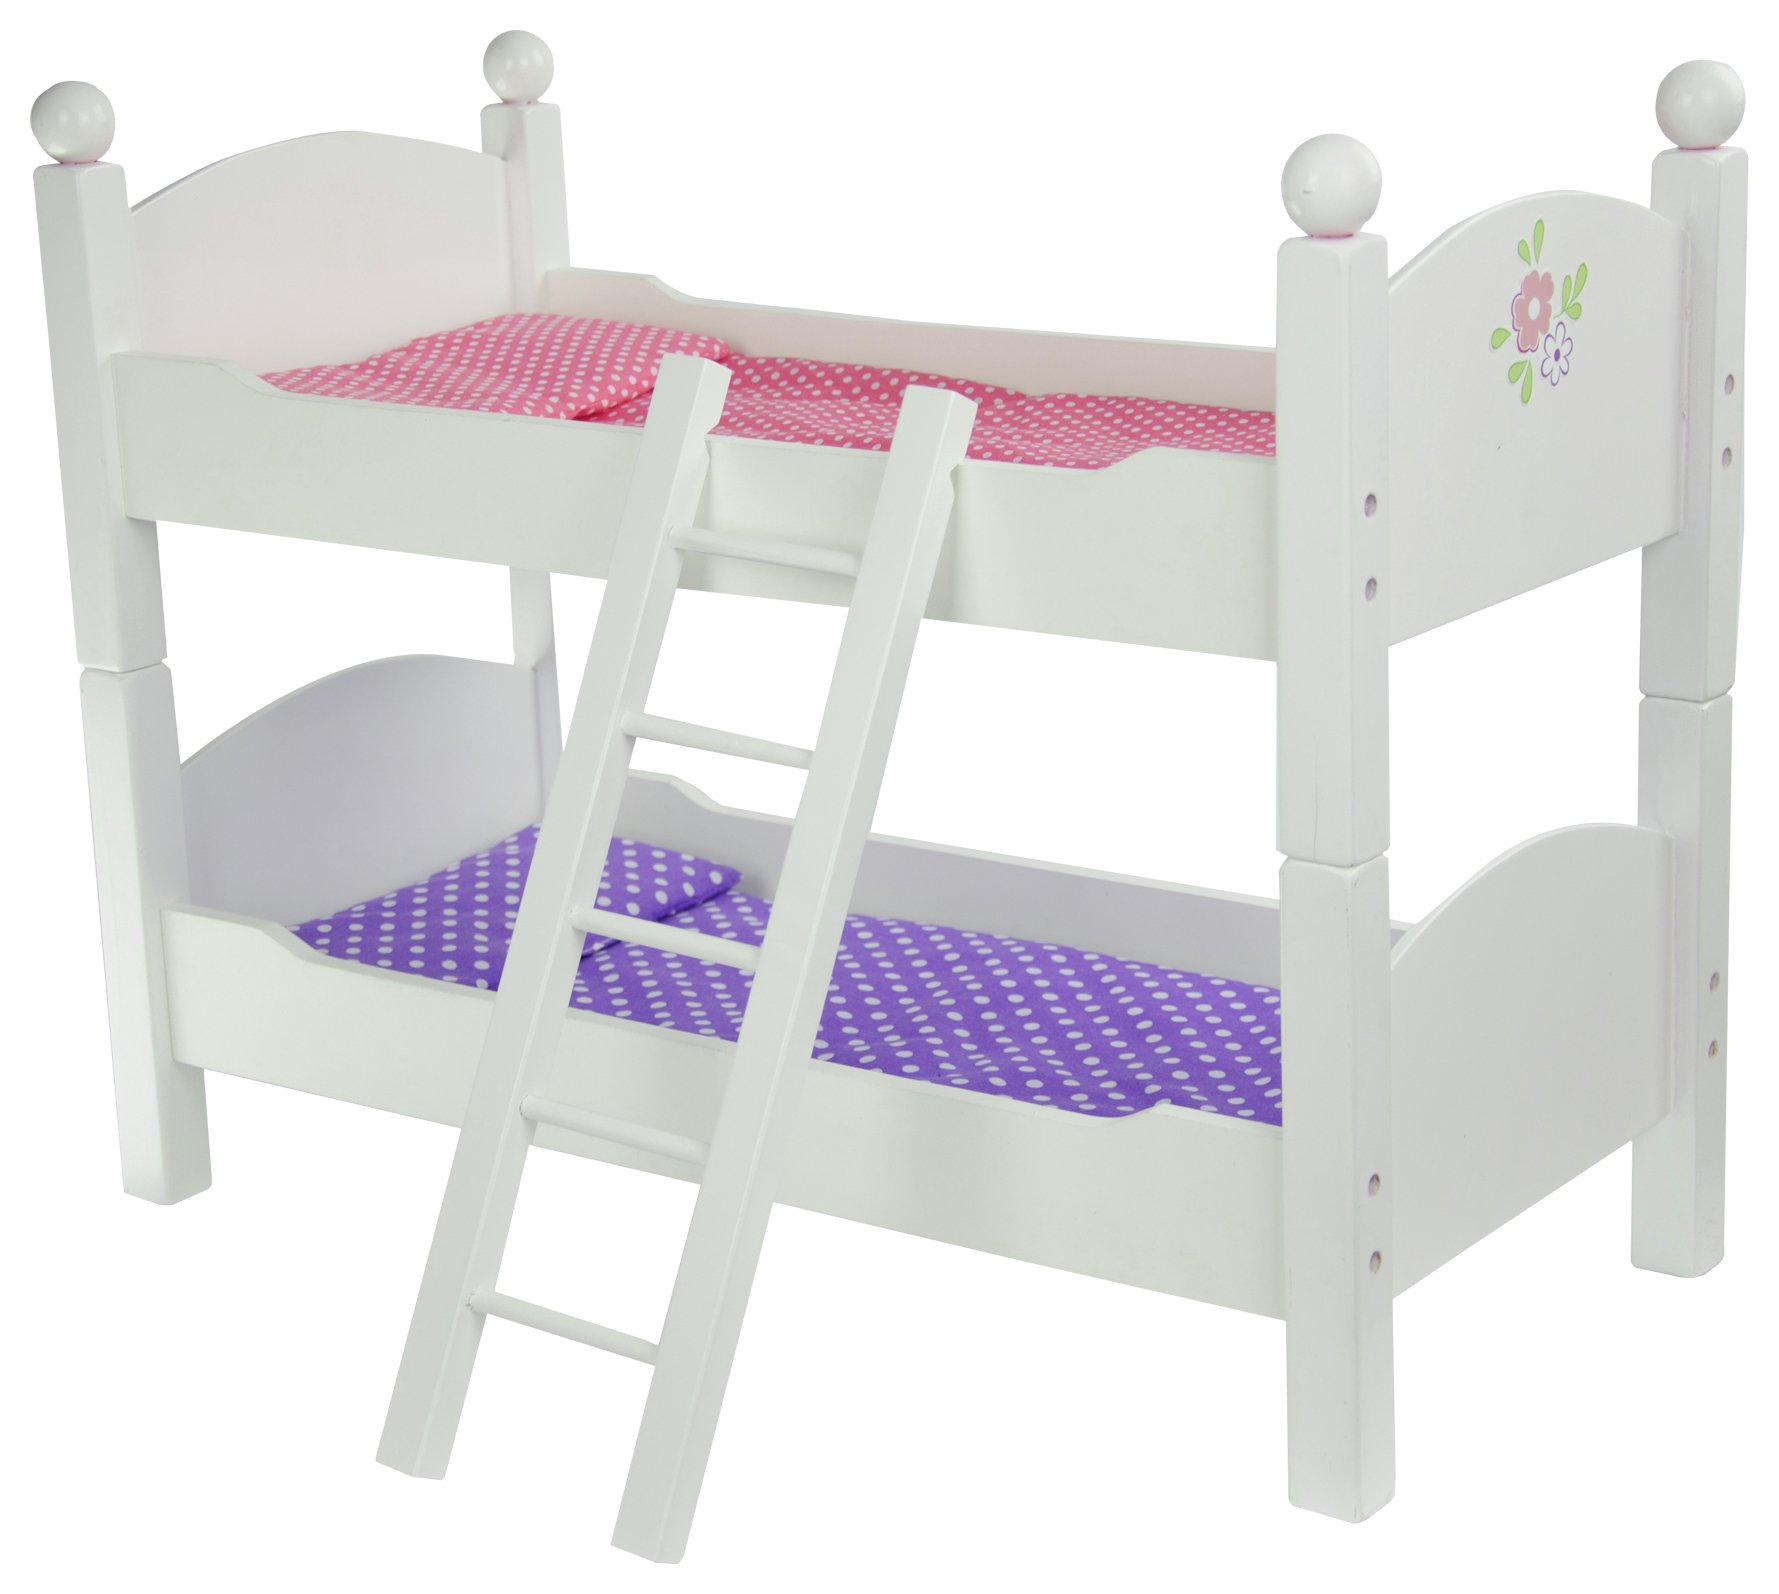 Olivias Little World Double Bunk Bed.